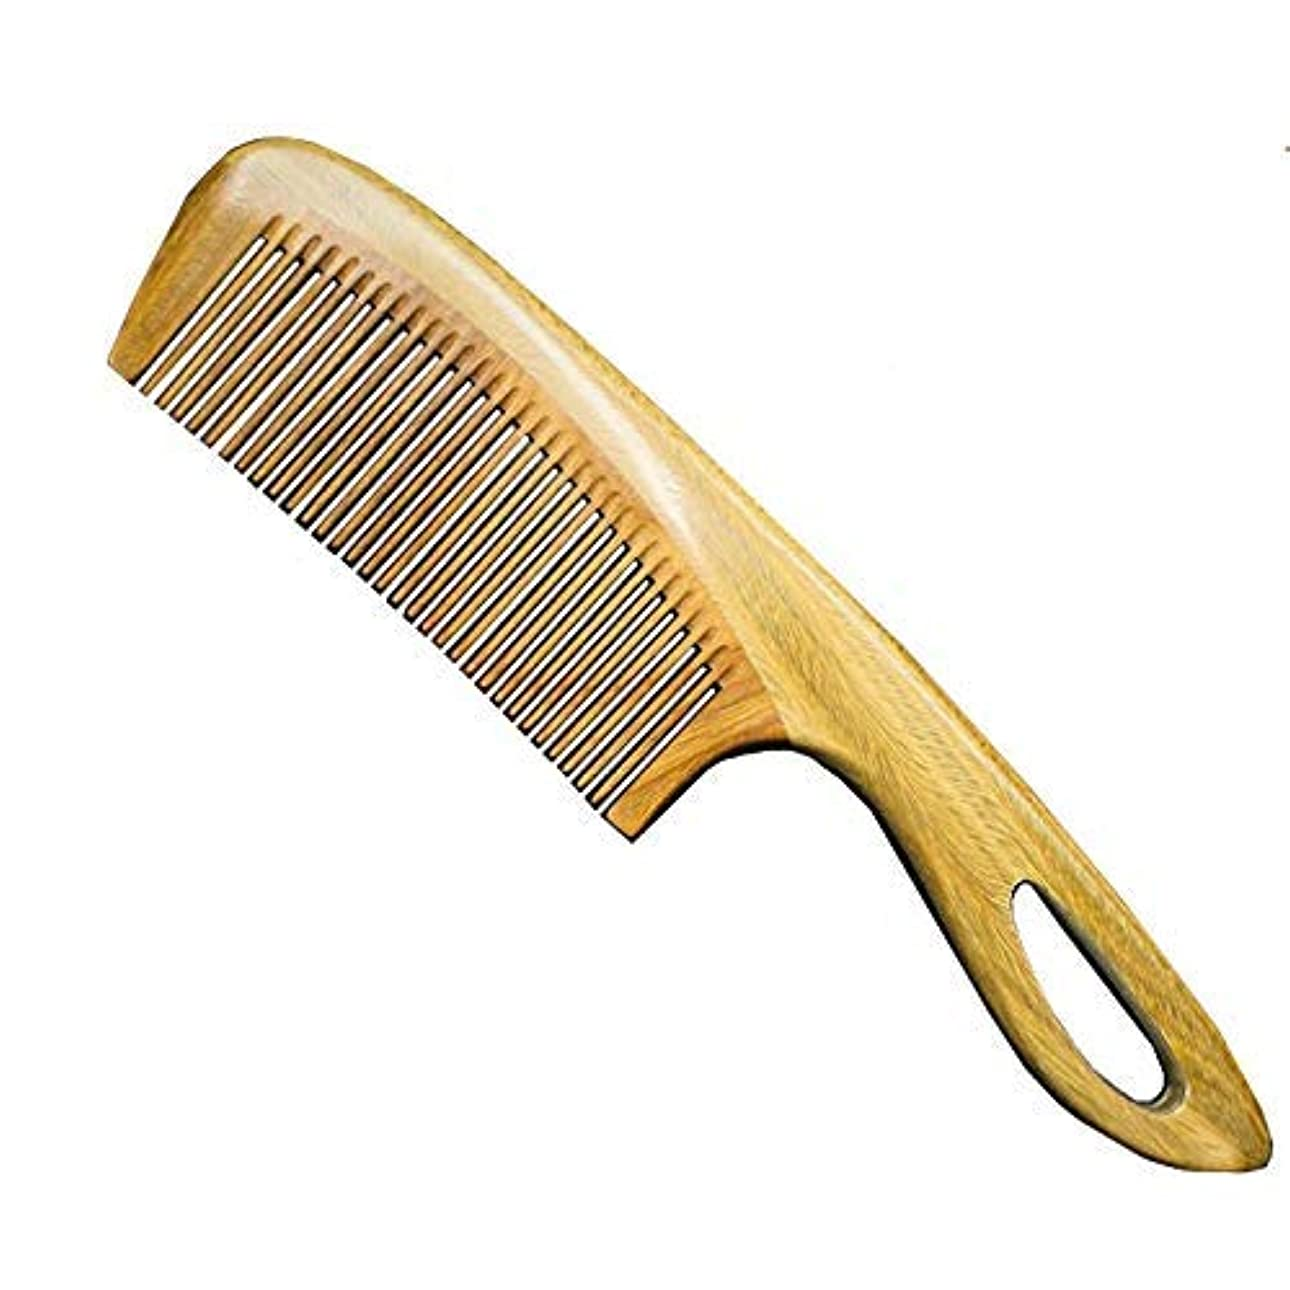 リフレッシュ活性化差別Natural Sandalwood Wood Comb - No Static Fine Tooth Hair Comb - Natural Aroma, Handmade, Massage Head, Hair Care...